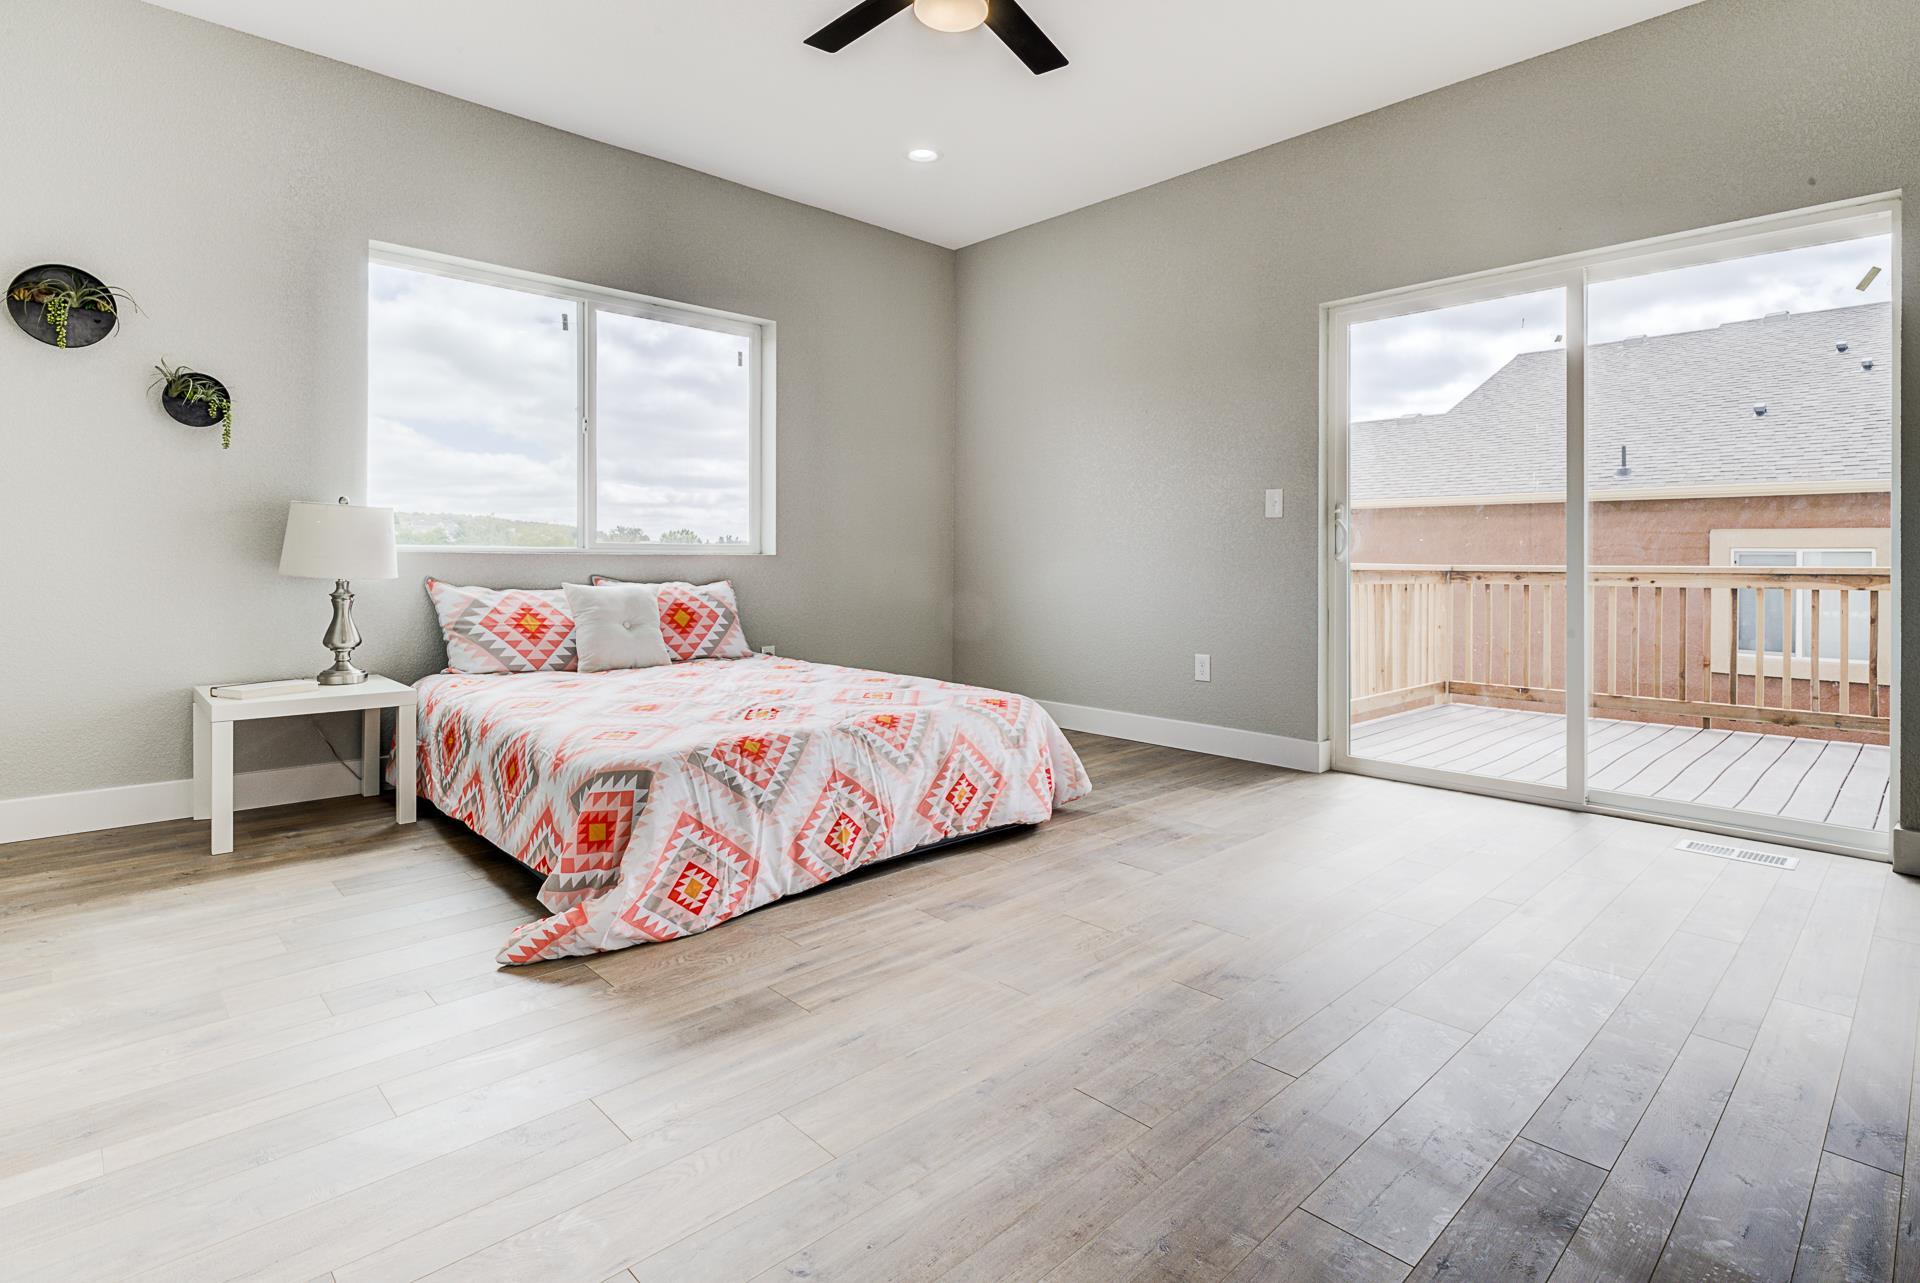 Bedroom featured in the Monarch By Ideal Homes in Colorado Springs, CO